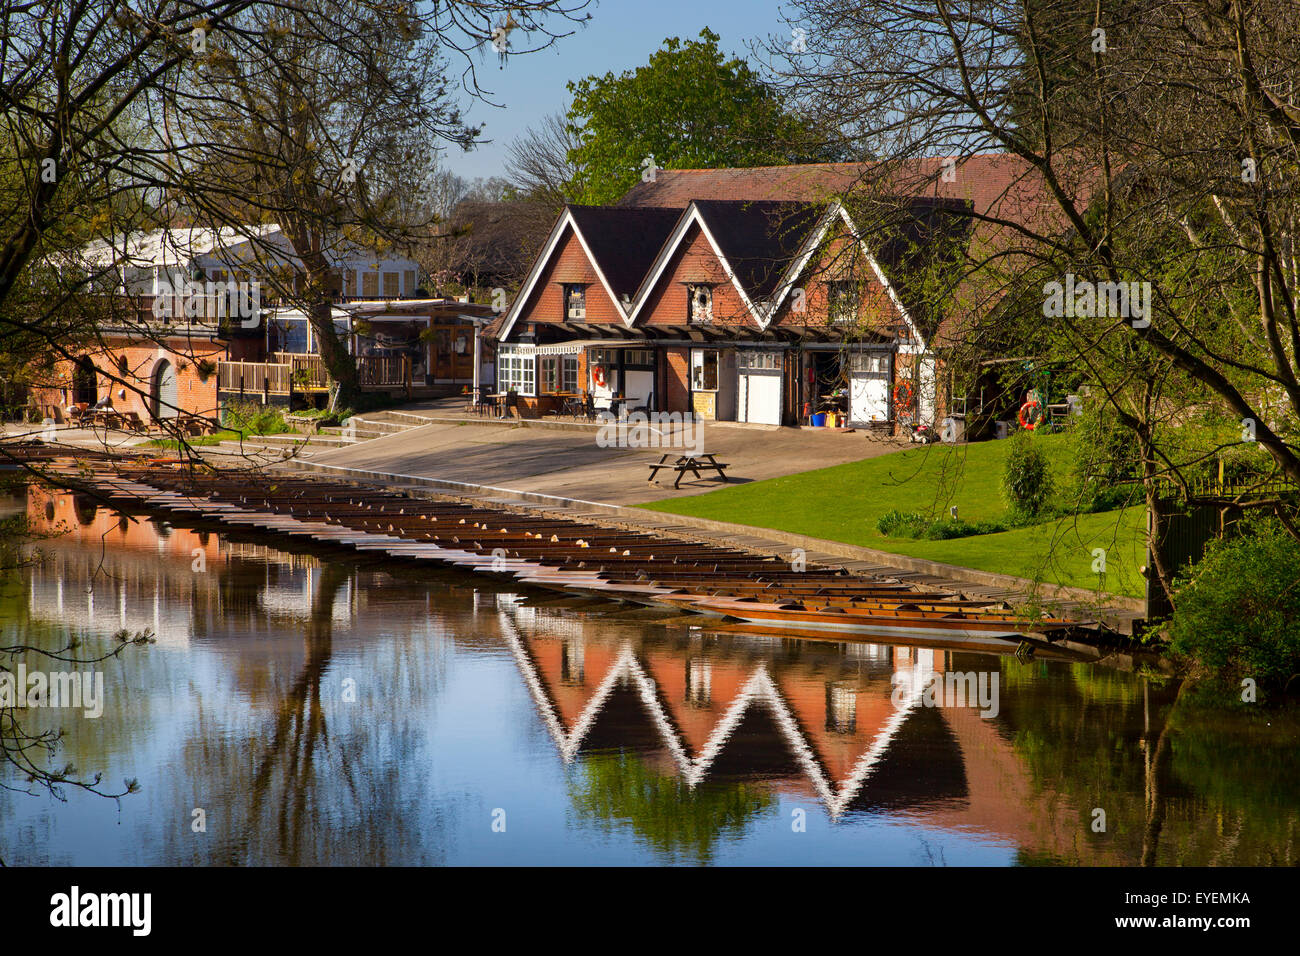 Cherwell Boathouse and punts,Oxford - Stock Image